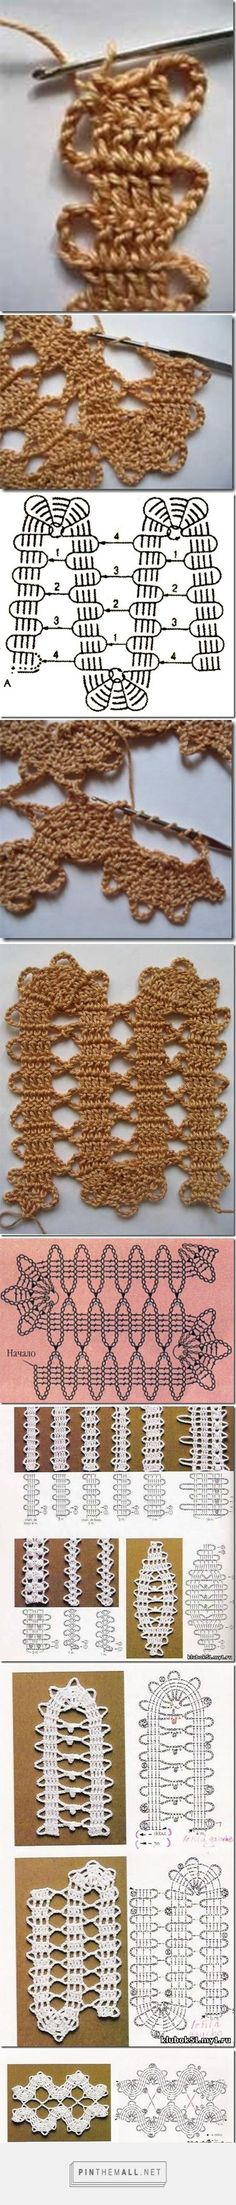 Crochet - bruges lace – HOW TO - loads of variations and photo tutorials